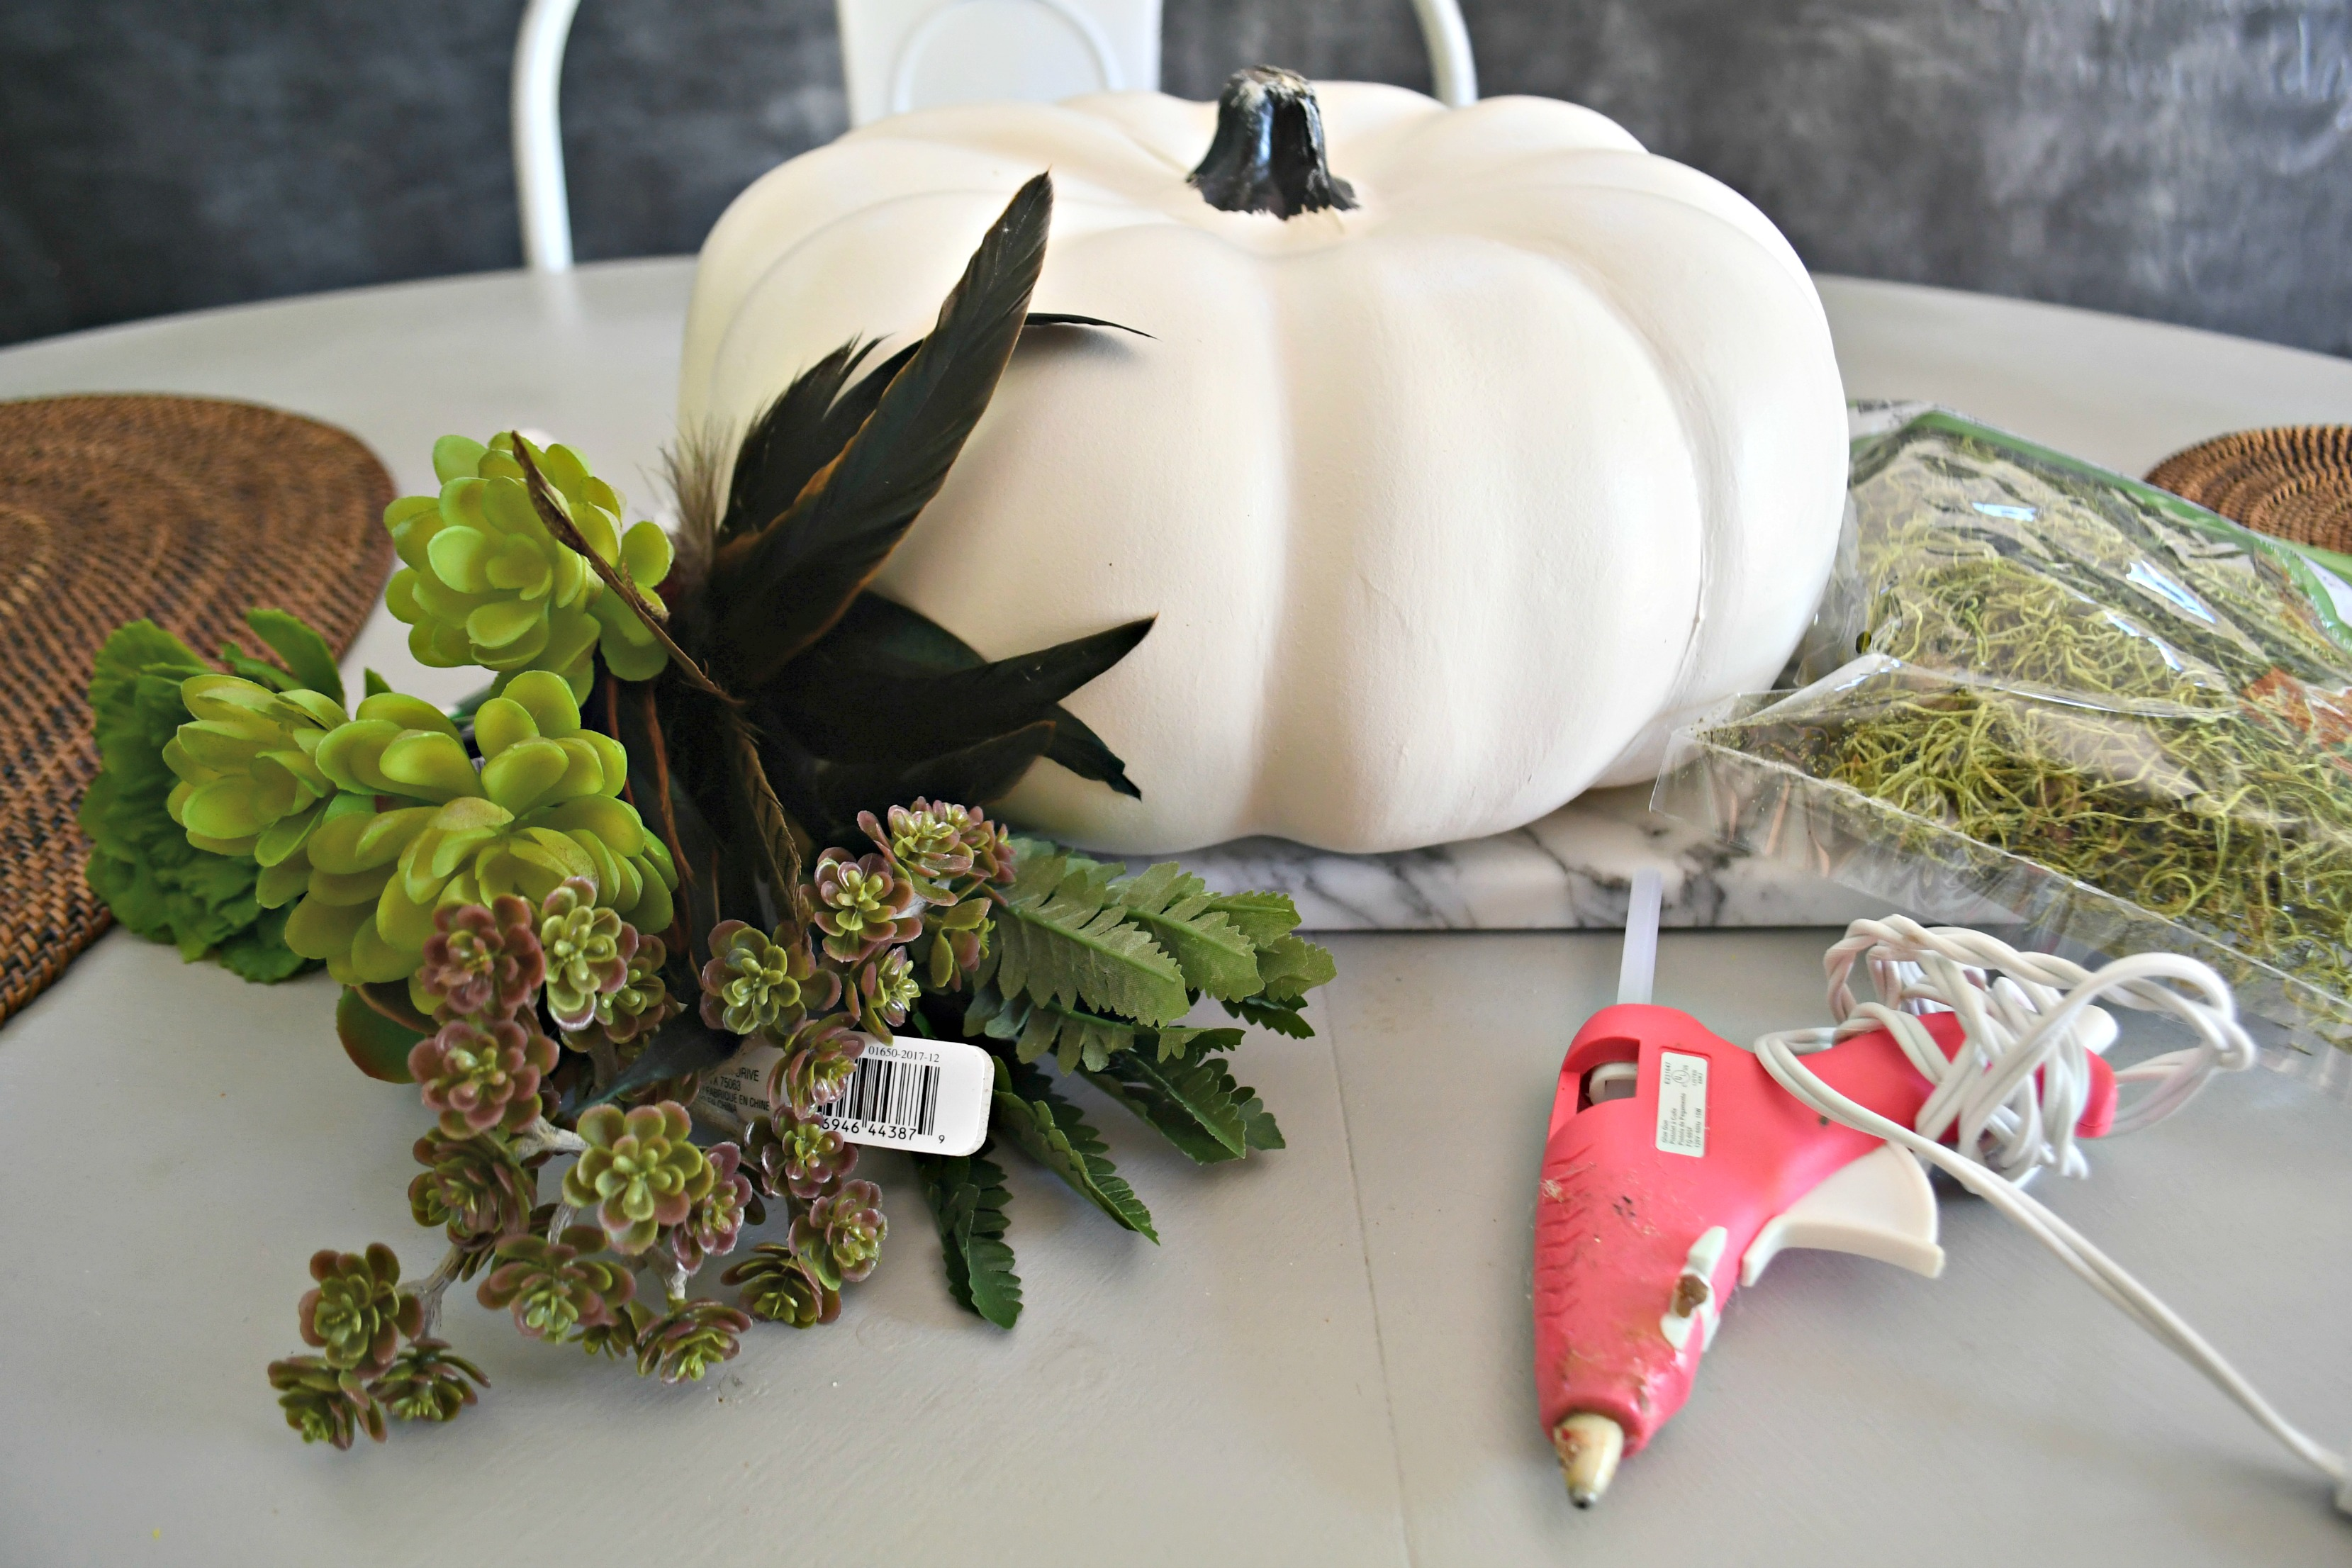 Style Your Fall Table With This Diy Succulent Centerpiece Idea Hip2save